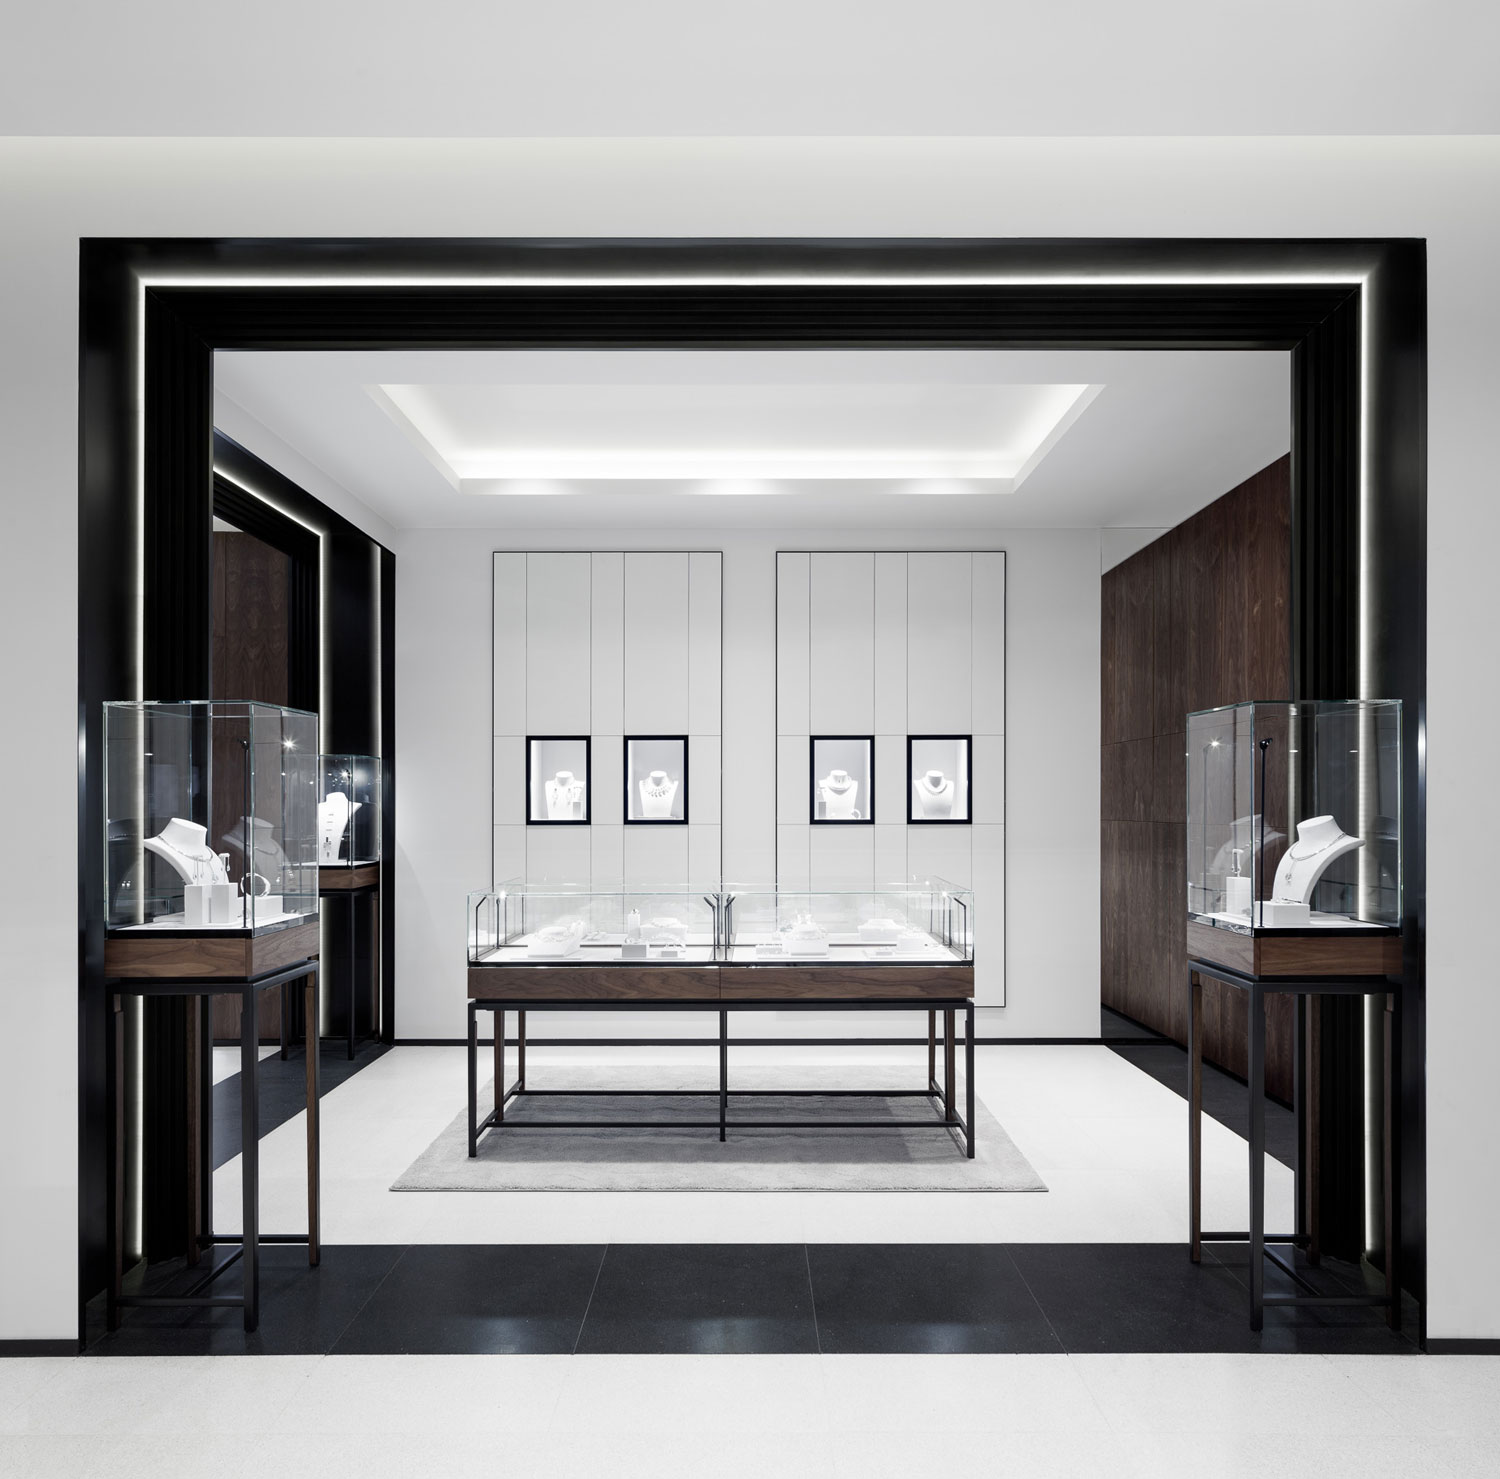 Georg jensen 39 s london boutique by studio david thulstrup for High design jewelry nyc